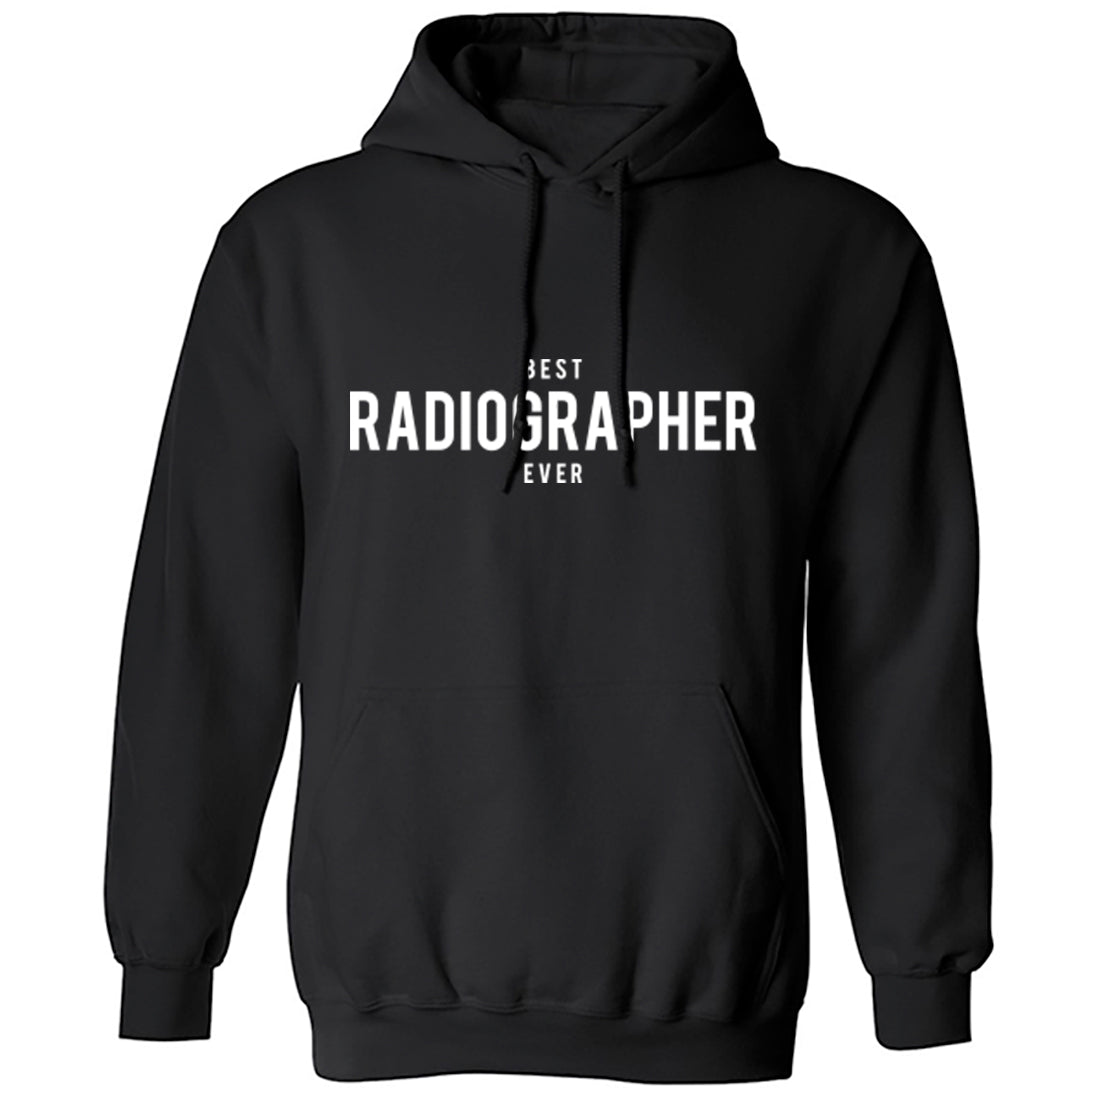 Best Radiographer Ever Unisex Hoodie K1504 - Illustrated Identity Ltd.